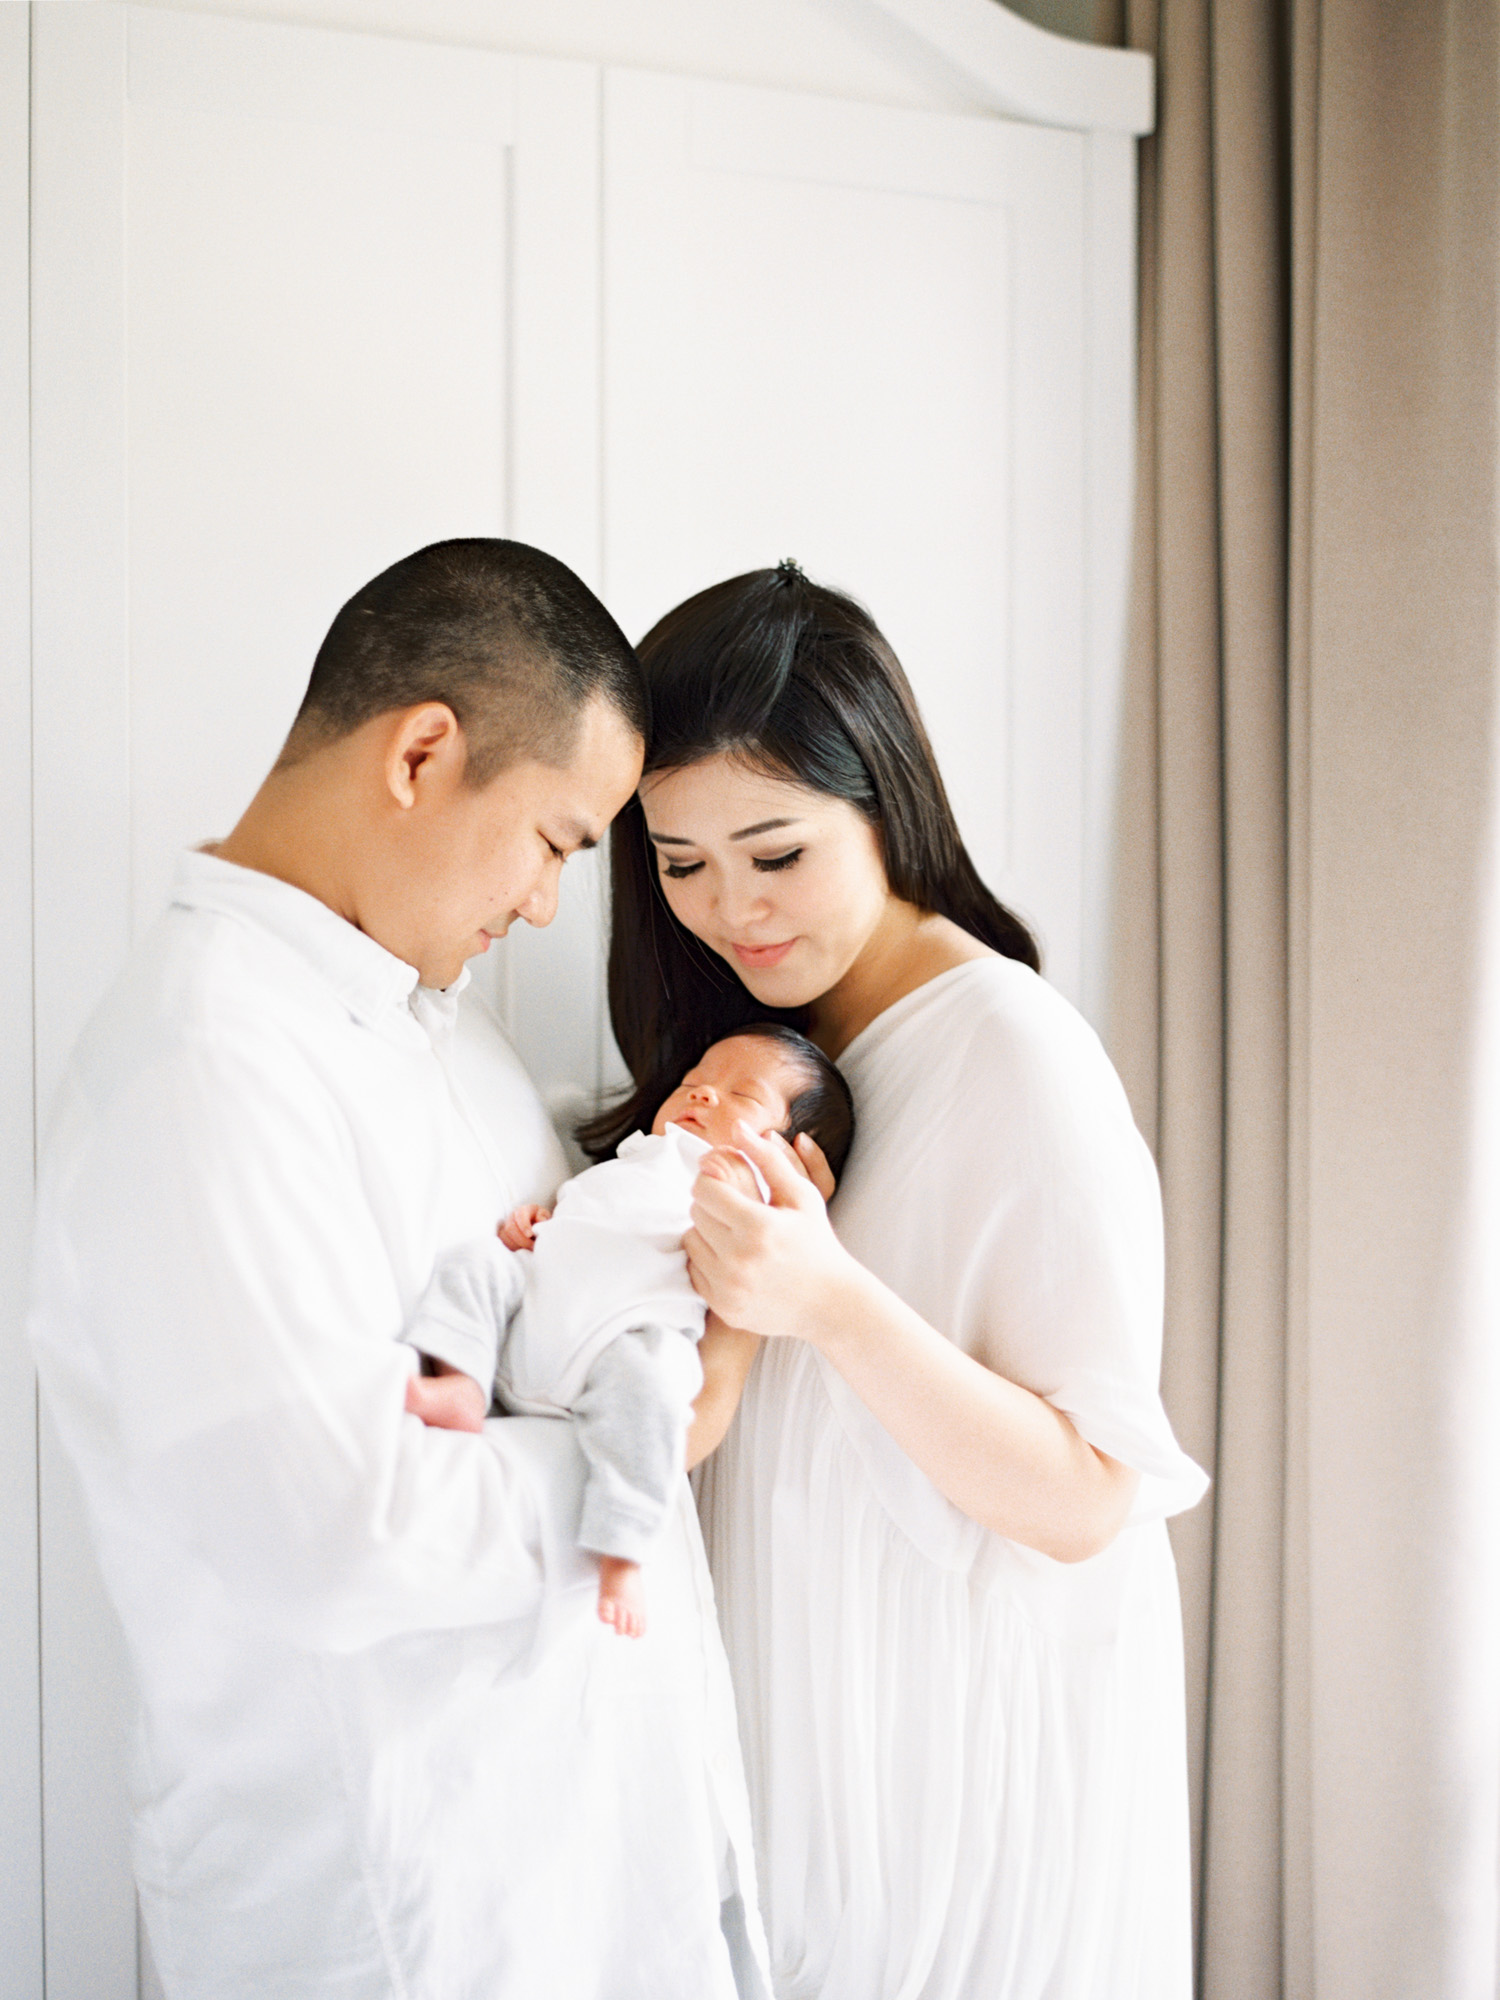 newborn baby girl film photography styling jakarta